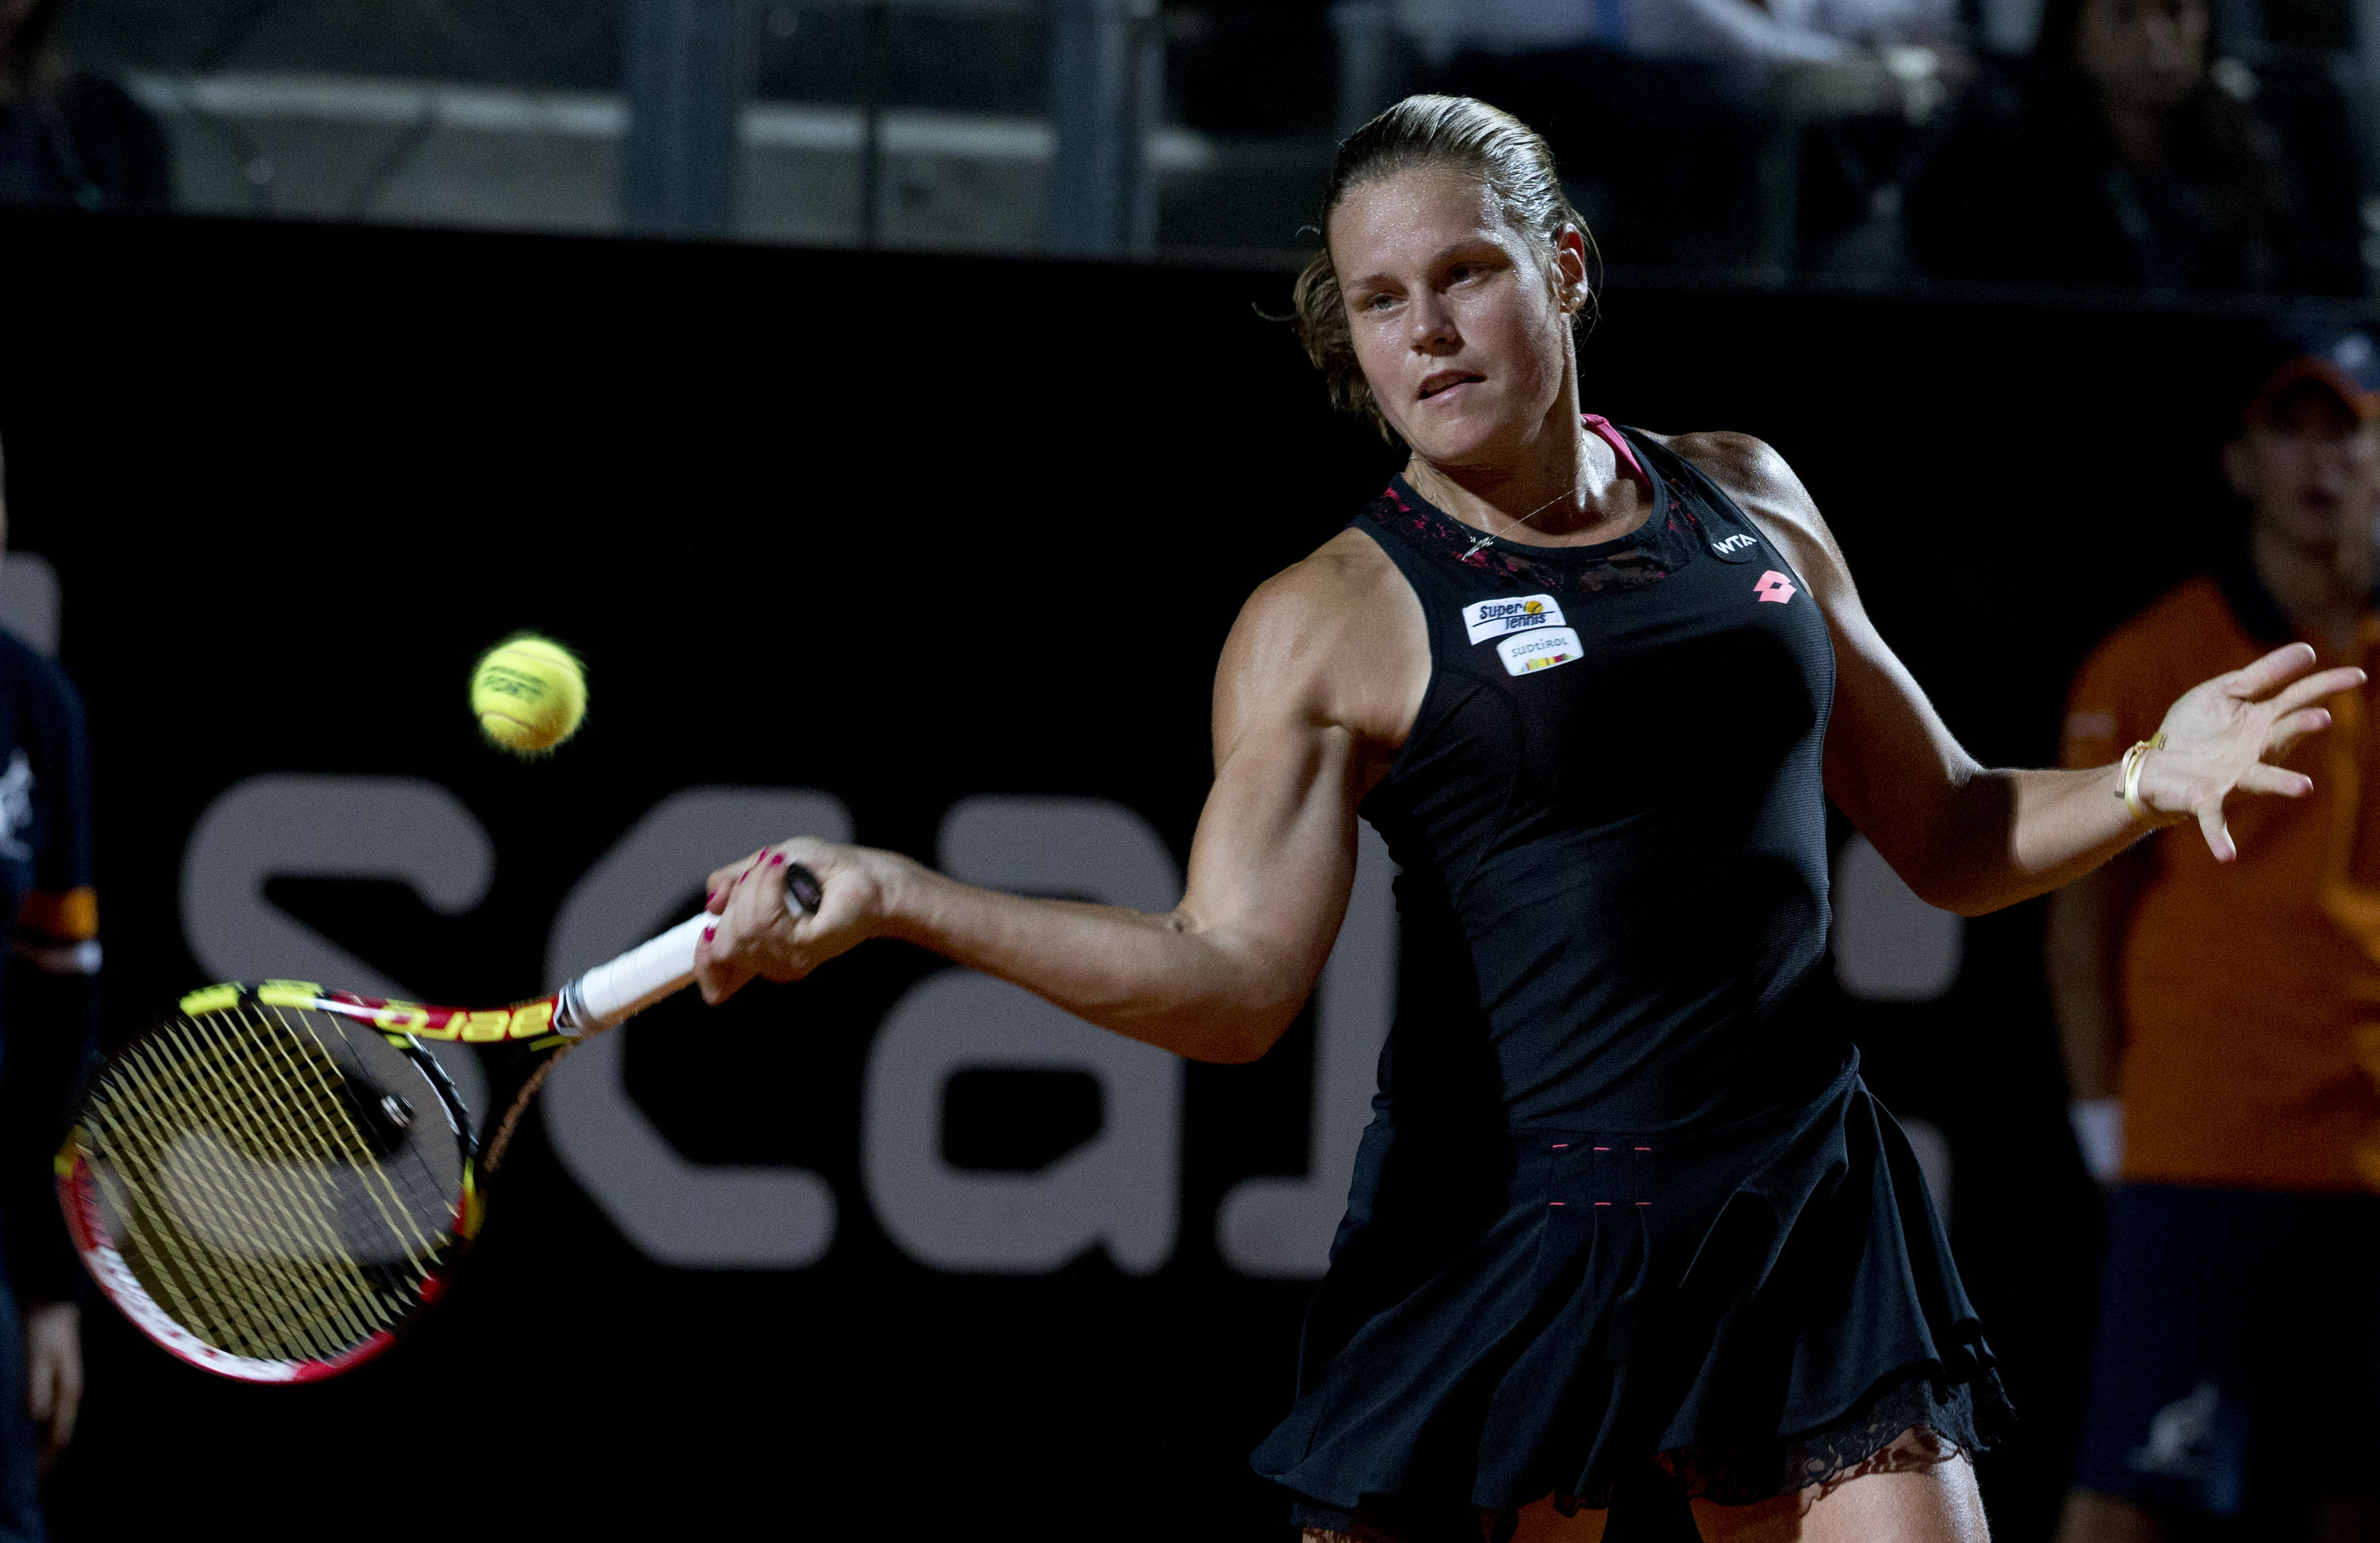 Karin Knapp, of Italy, returns the ball to Petra Kvitova, of the Czech Republic, during their match at the Italian Open tennis tournament, in Rome, Wednesday, May 13, 2015. (AP Photo/Andrew Medichini)